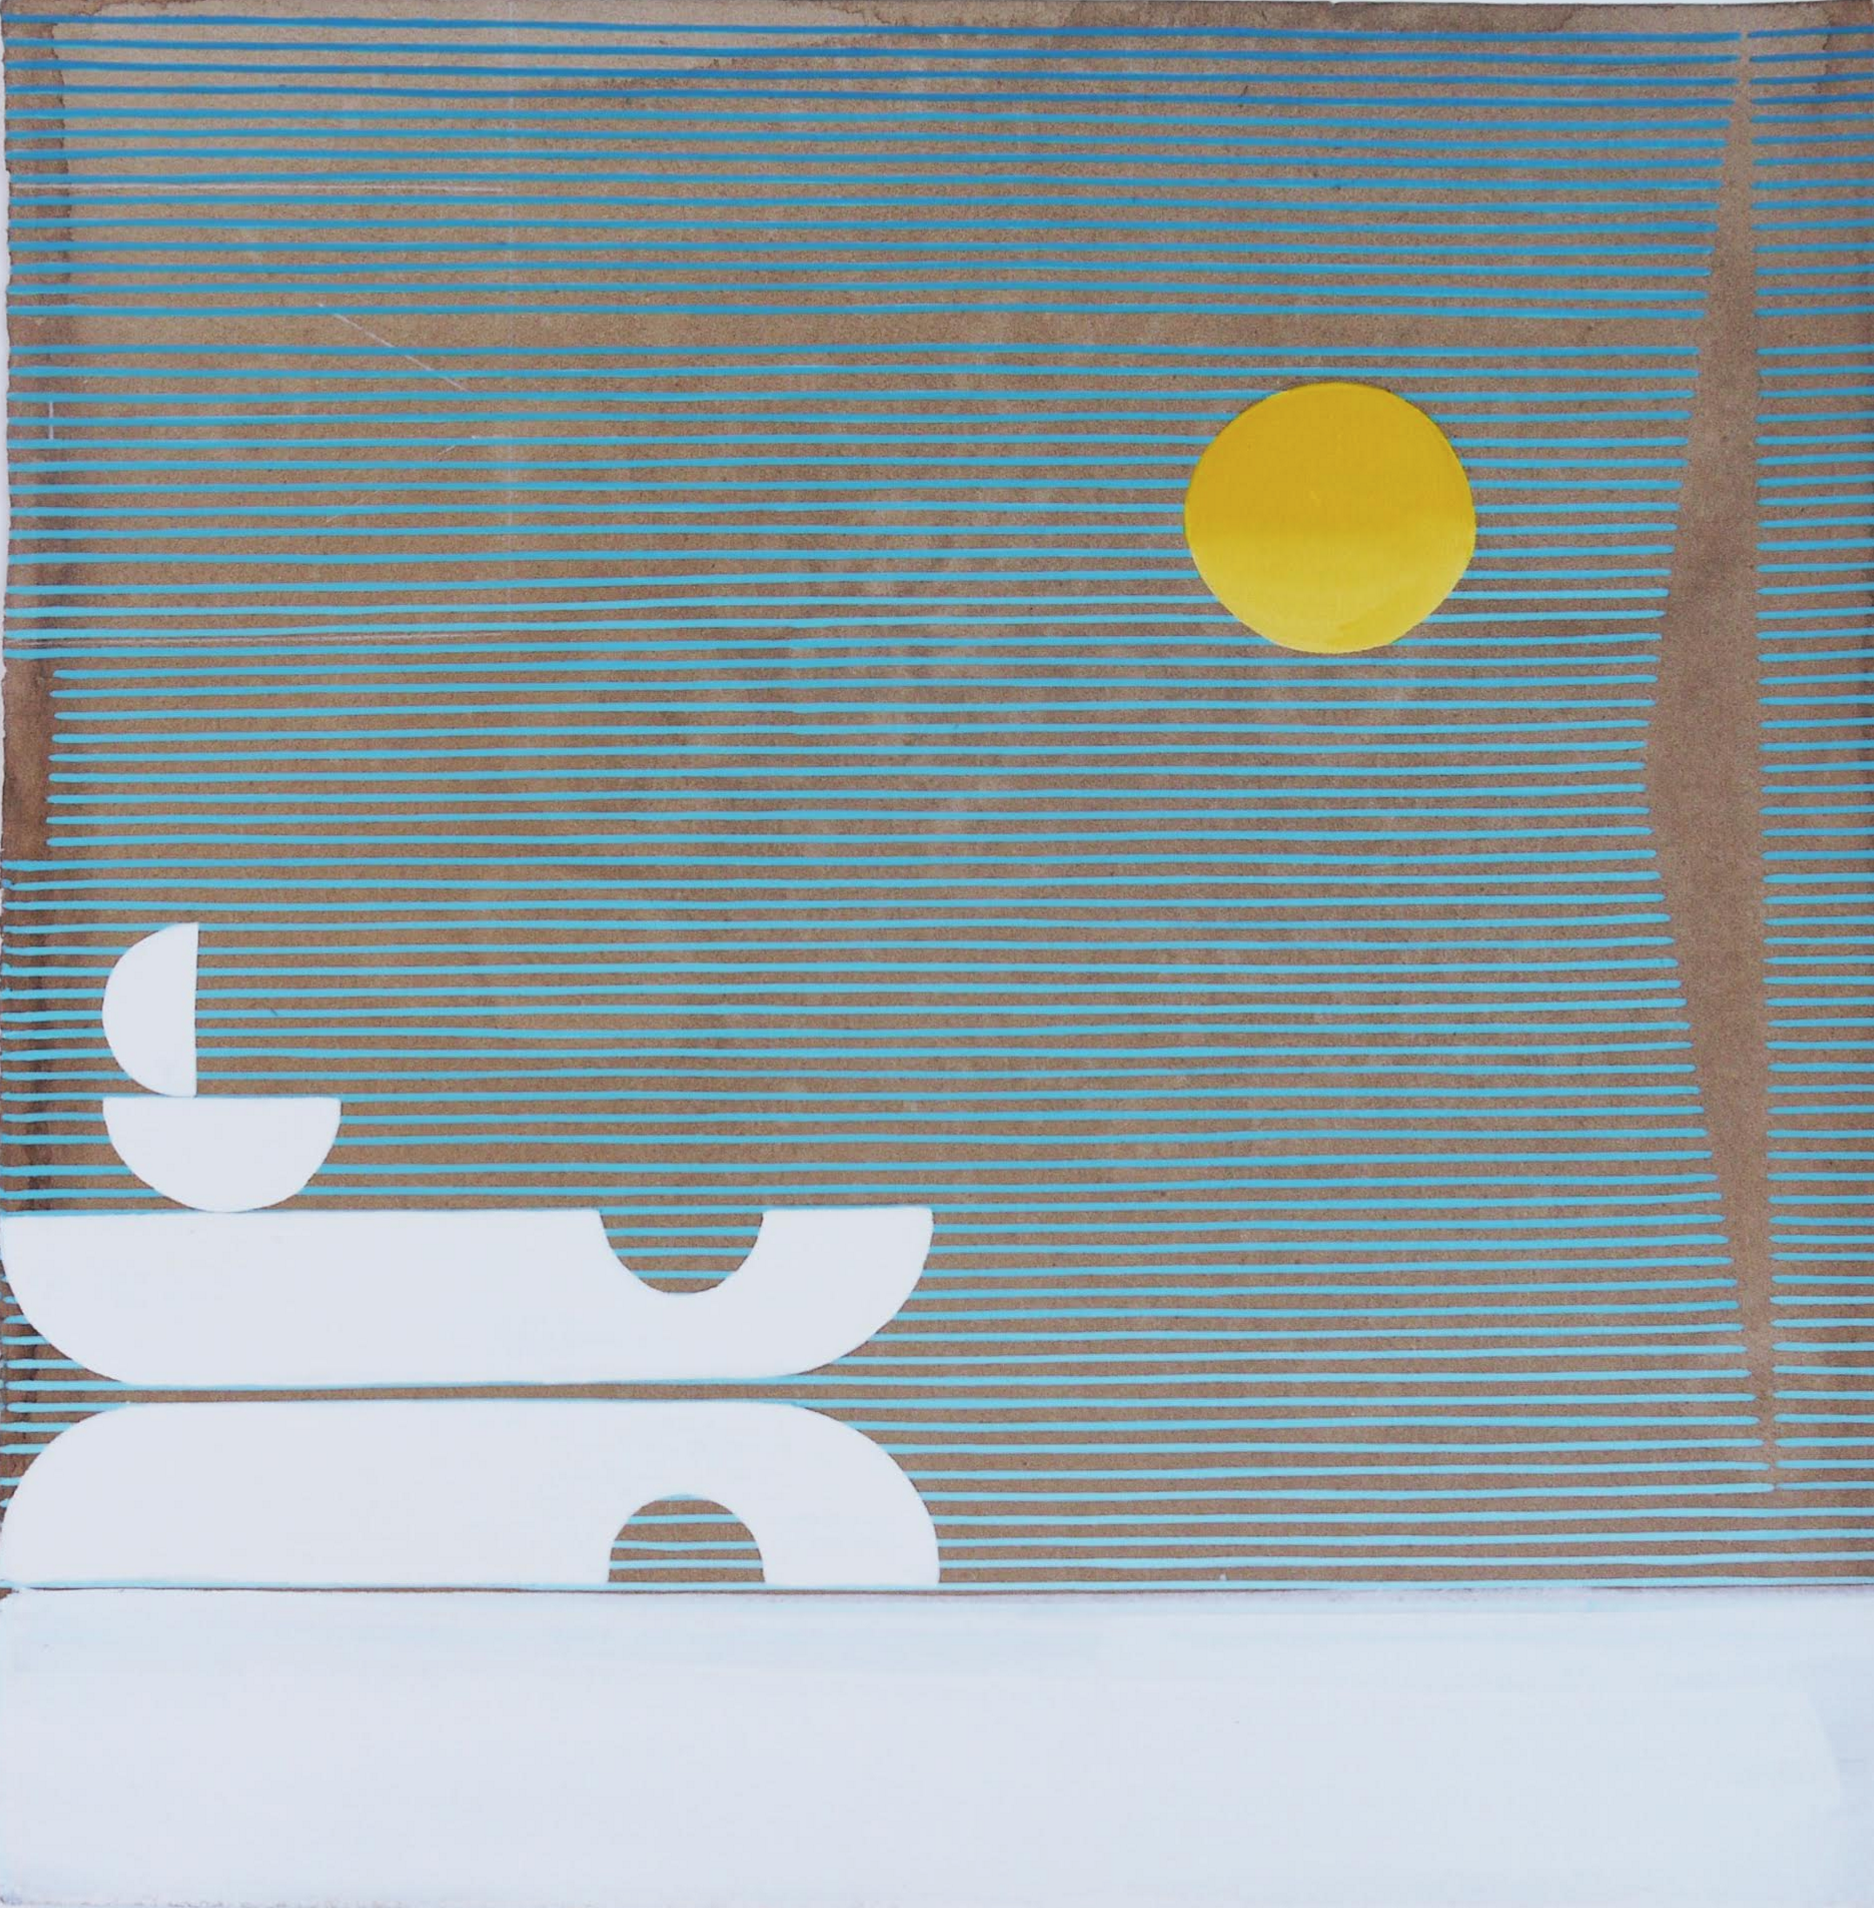 KellyOrding_Neve_Acrylic on dyed paper_15_5x15_5_2016.png